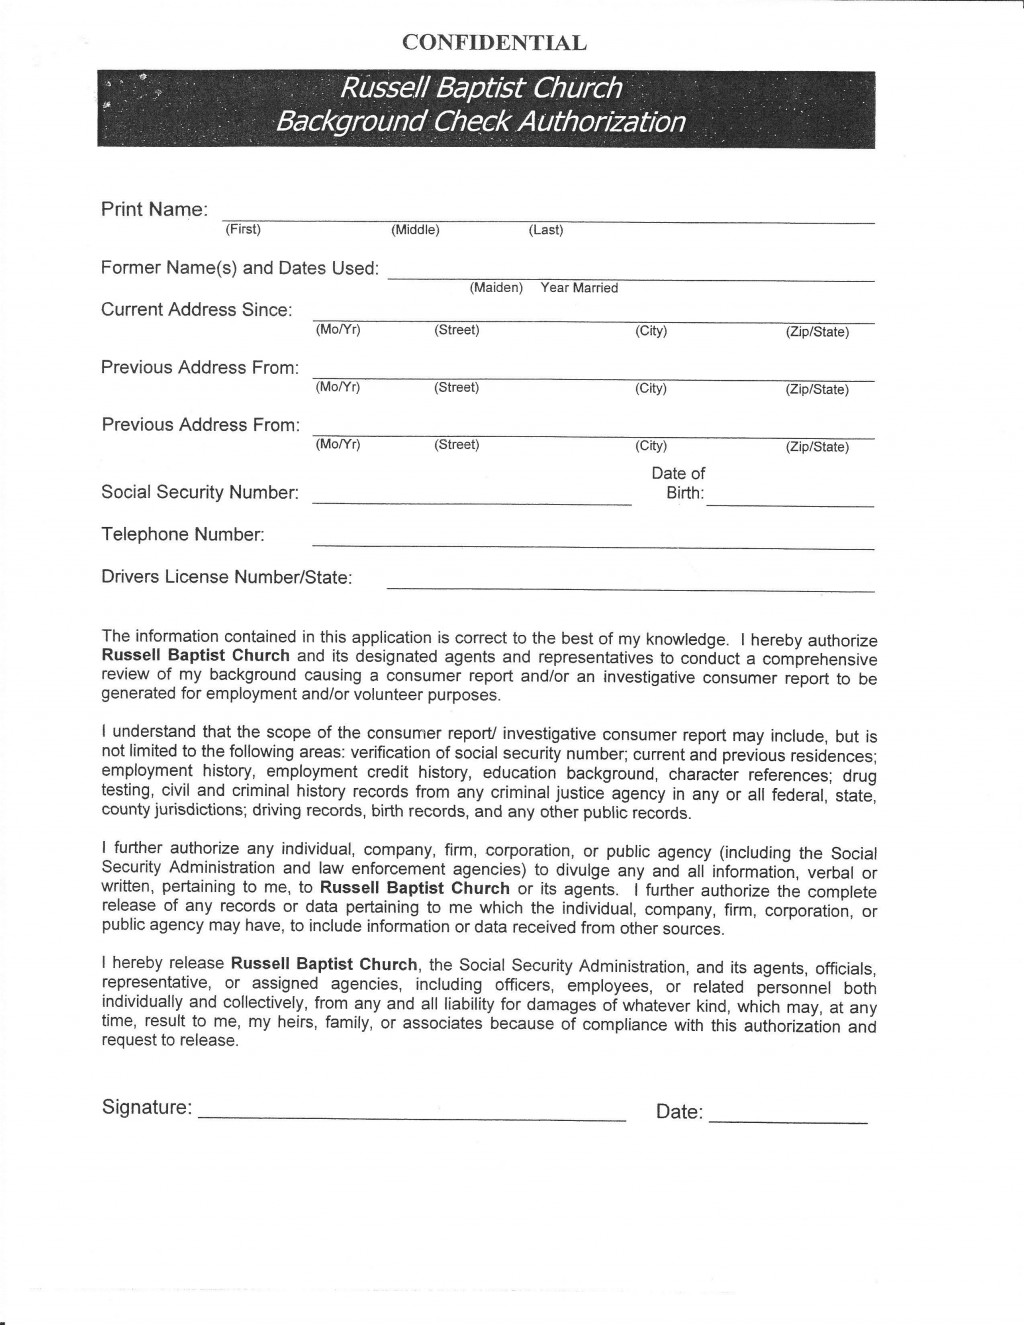 003 Awesome Background Check Form Template Free High Def  AuthorizationLarge